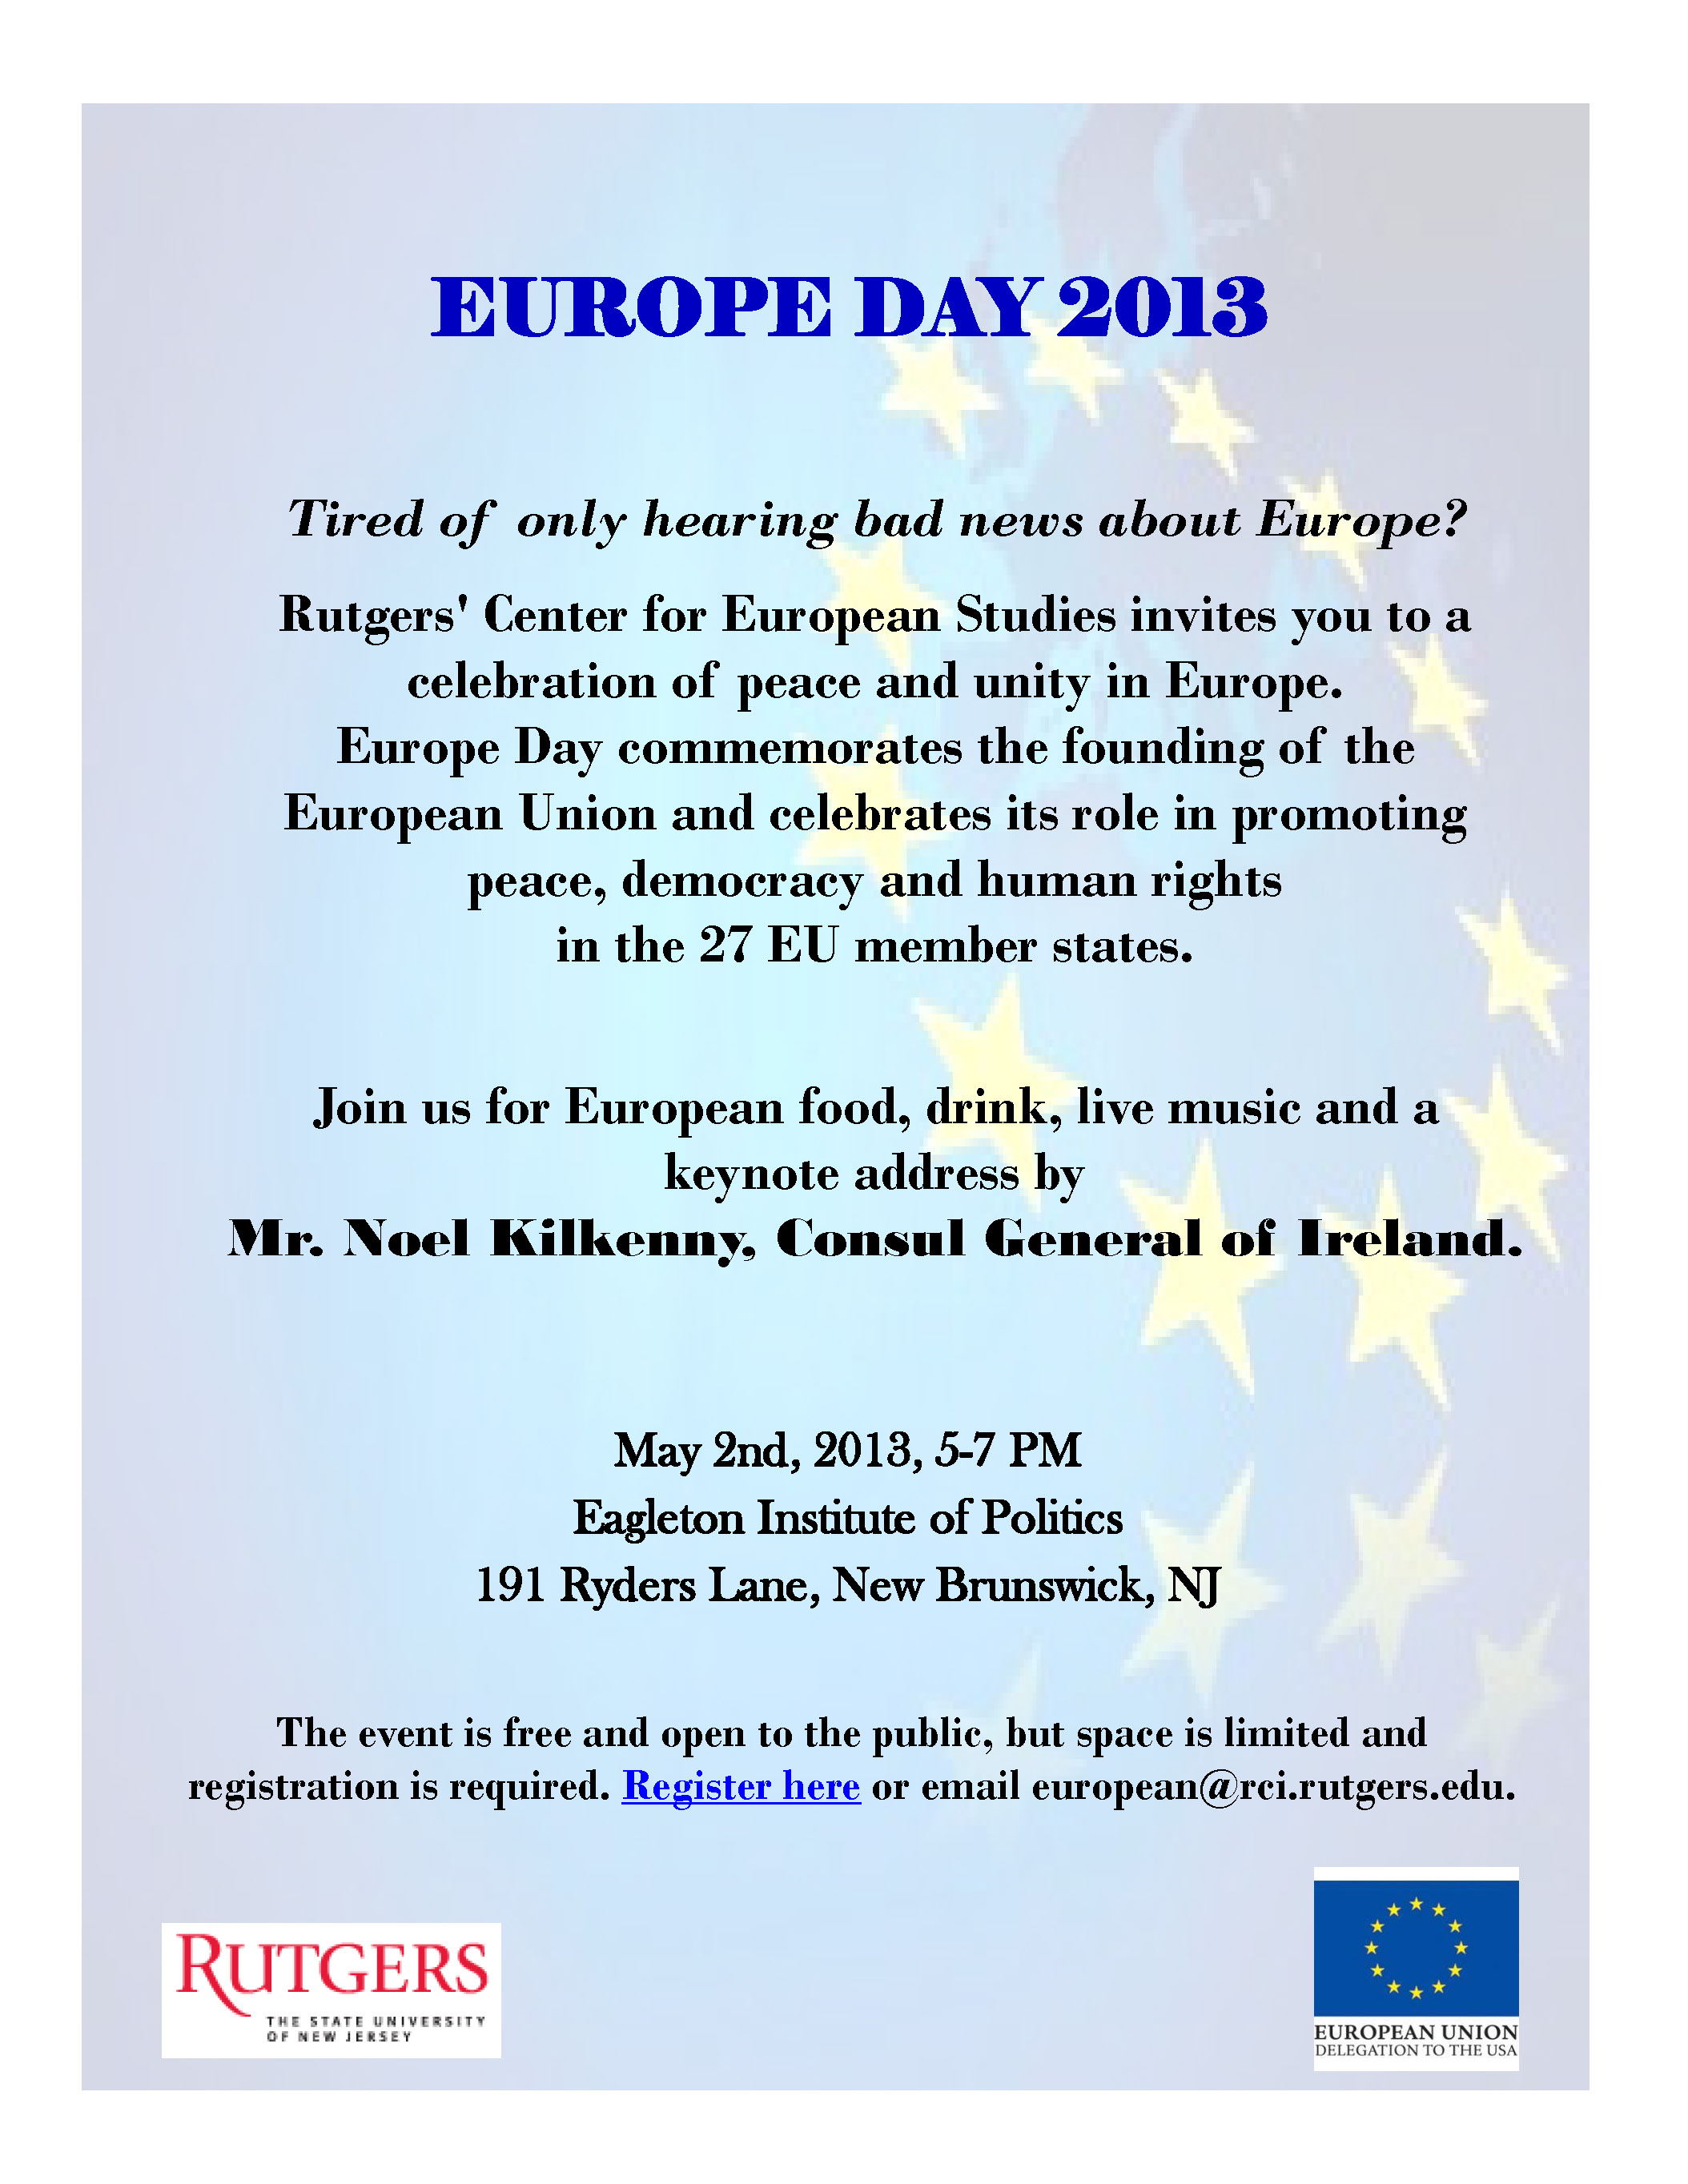 Europe Day Invitation